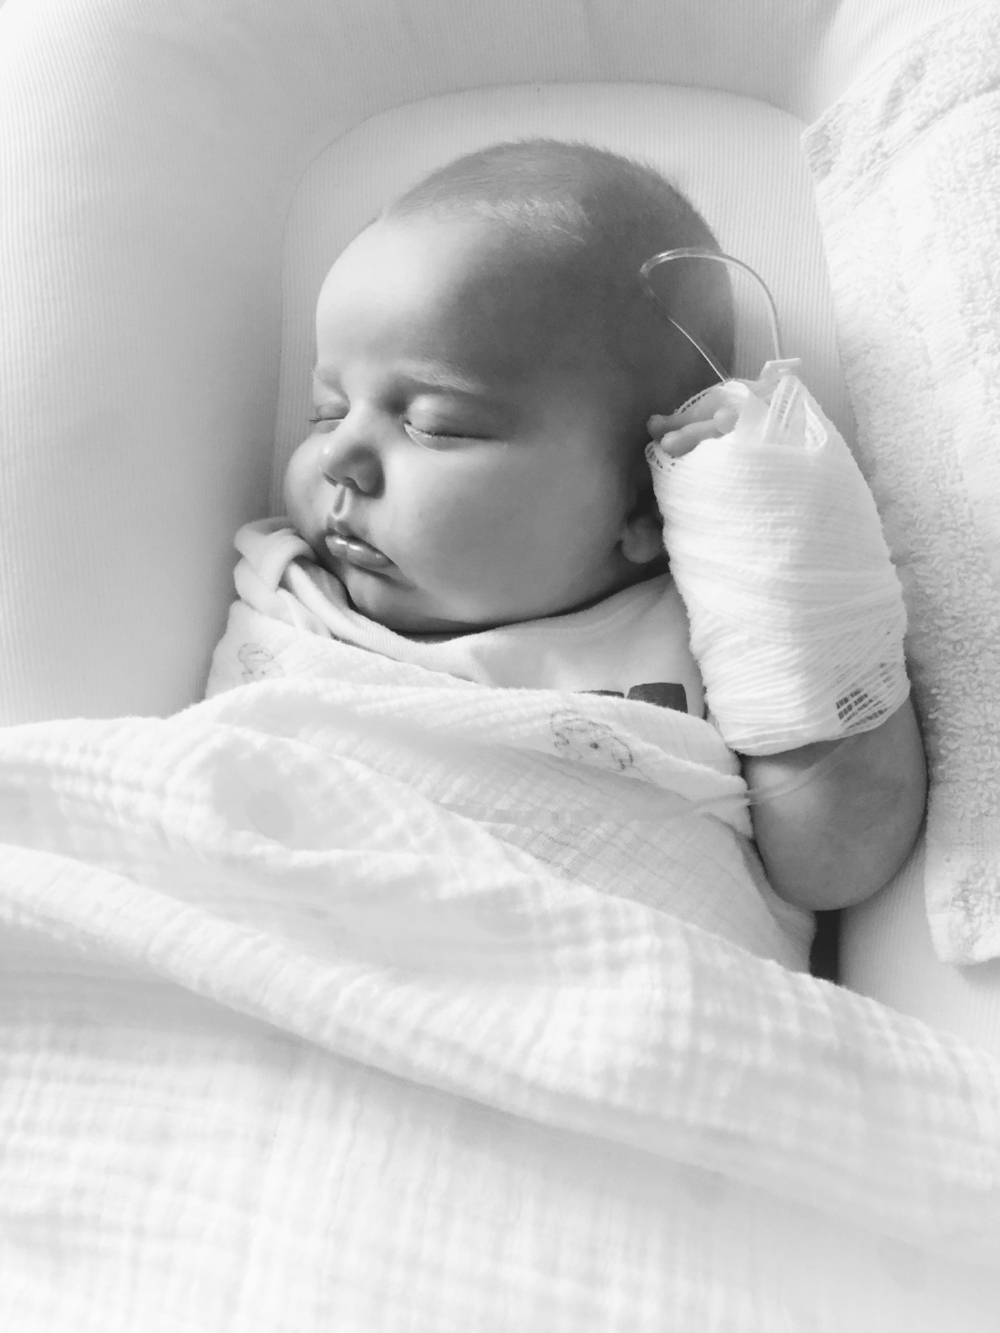 Maeve's first hospitalization at 7 weeks old.